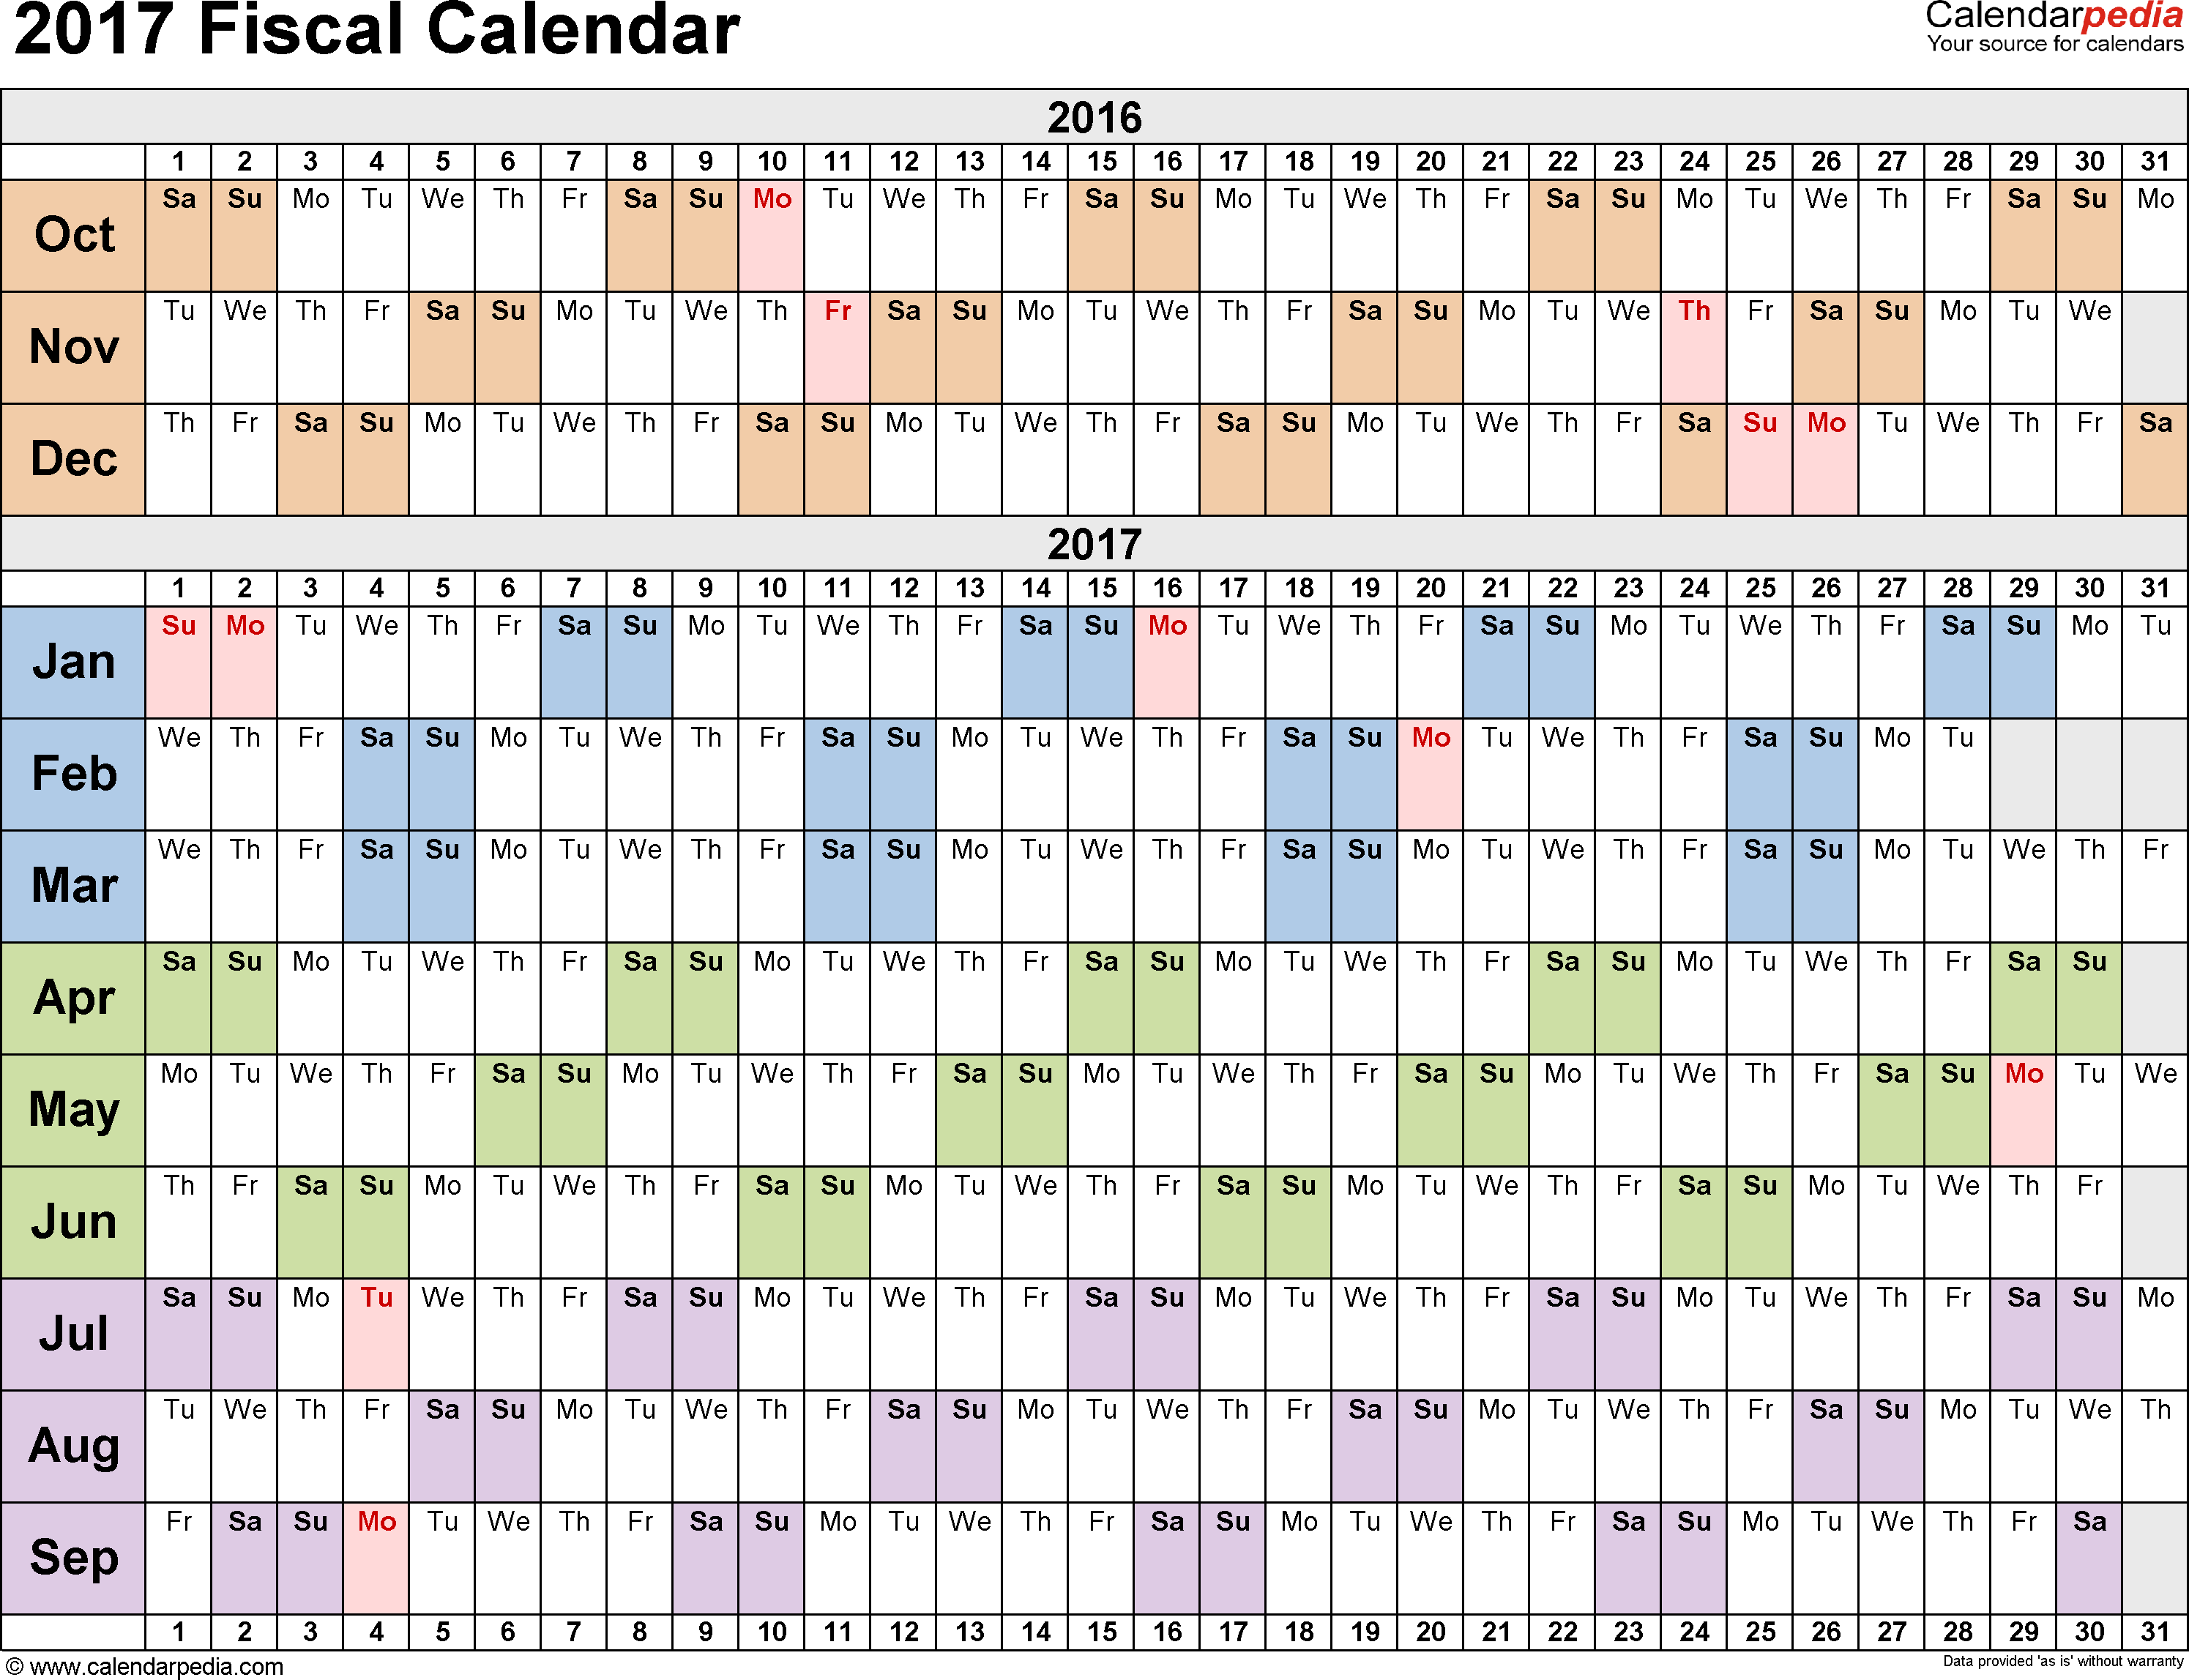 Fiscal calendars 2017 as free printable Word templates